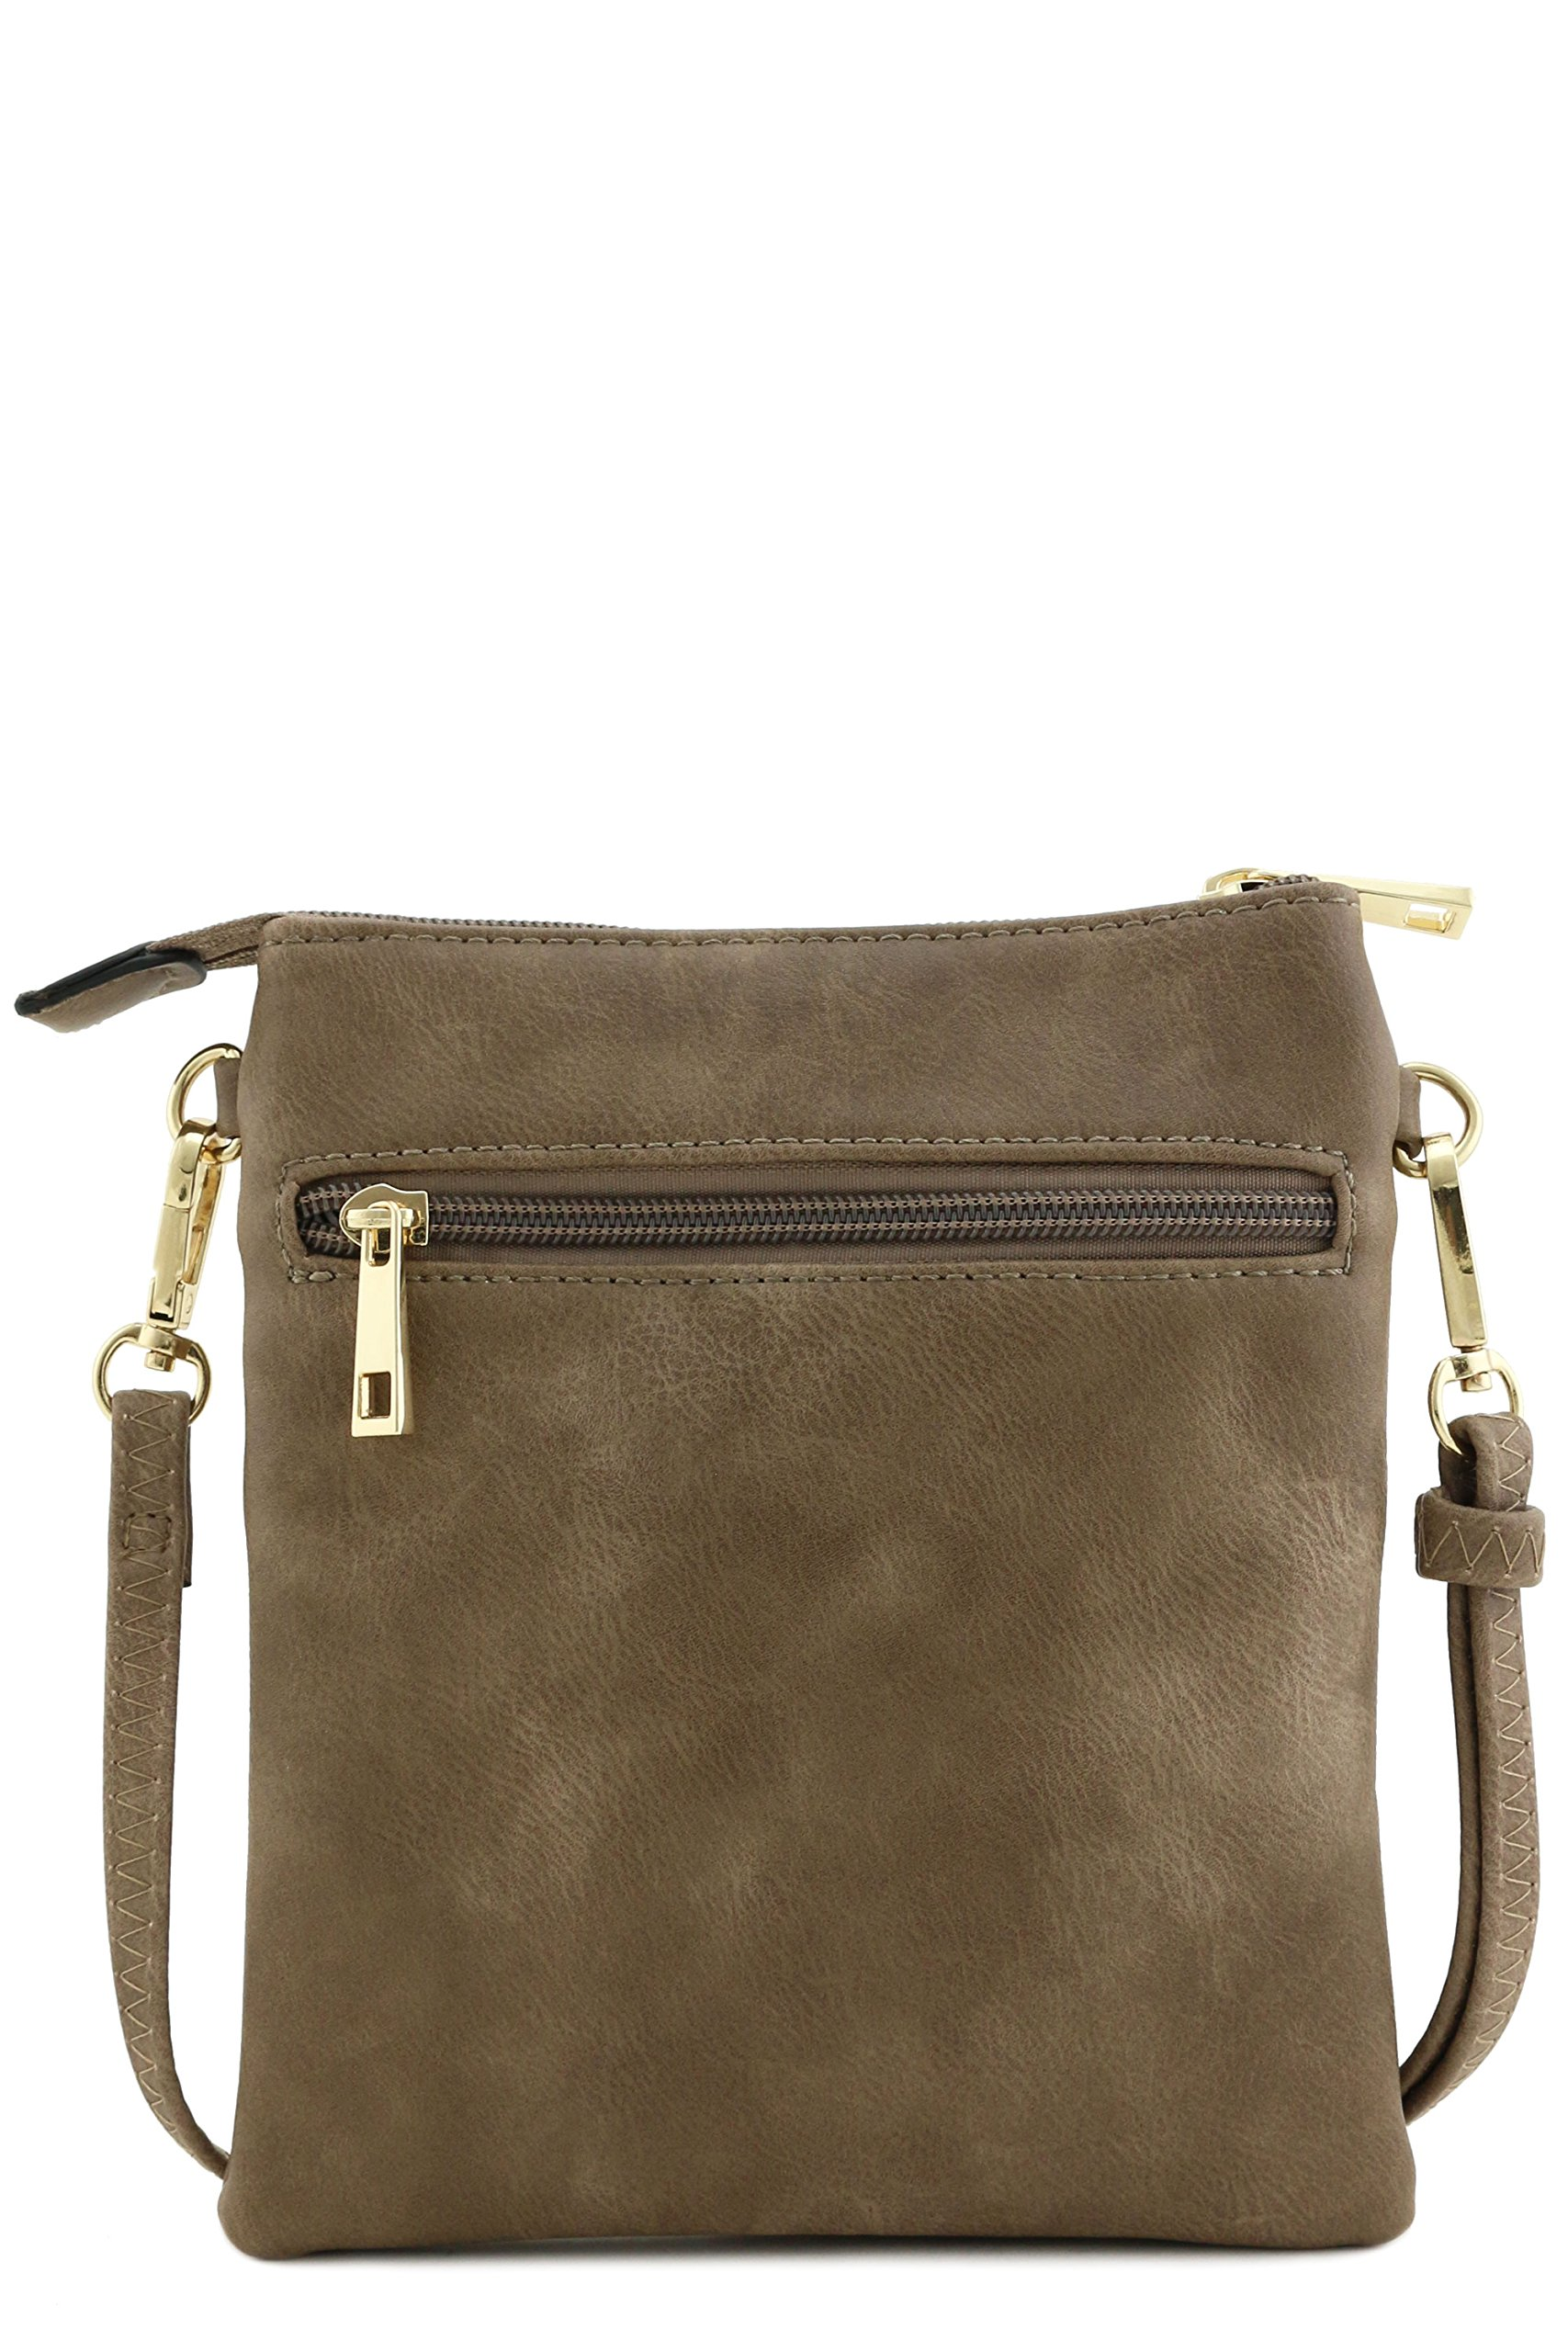 Functional Multi Pocket Crossbody Bag (Taupe) by Isabelle (Image #6)